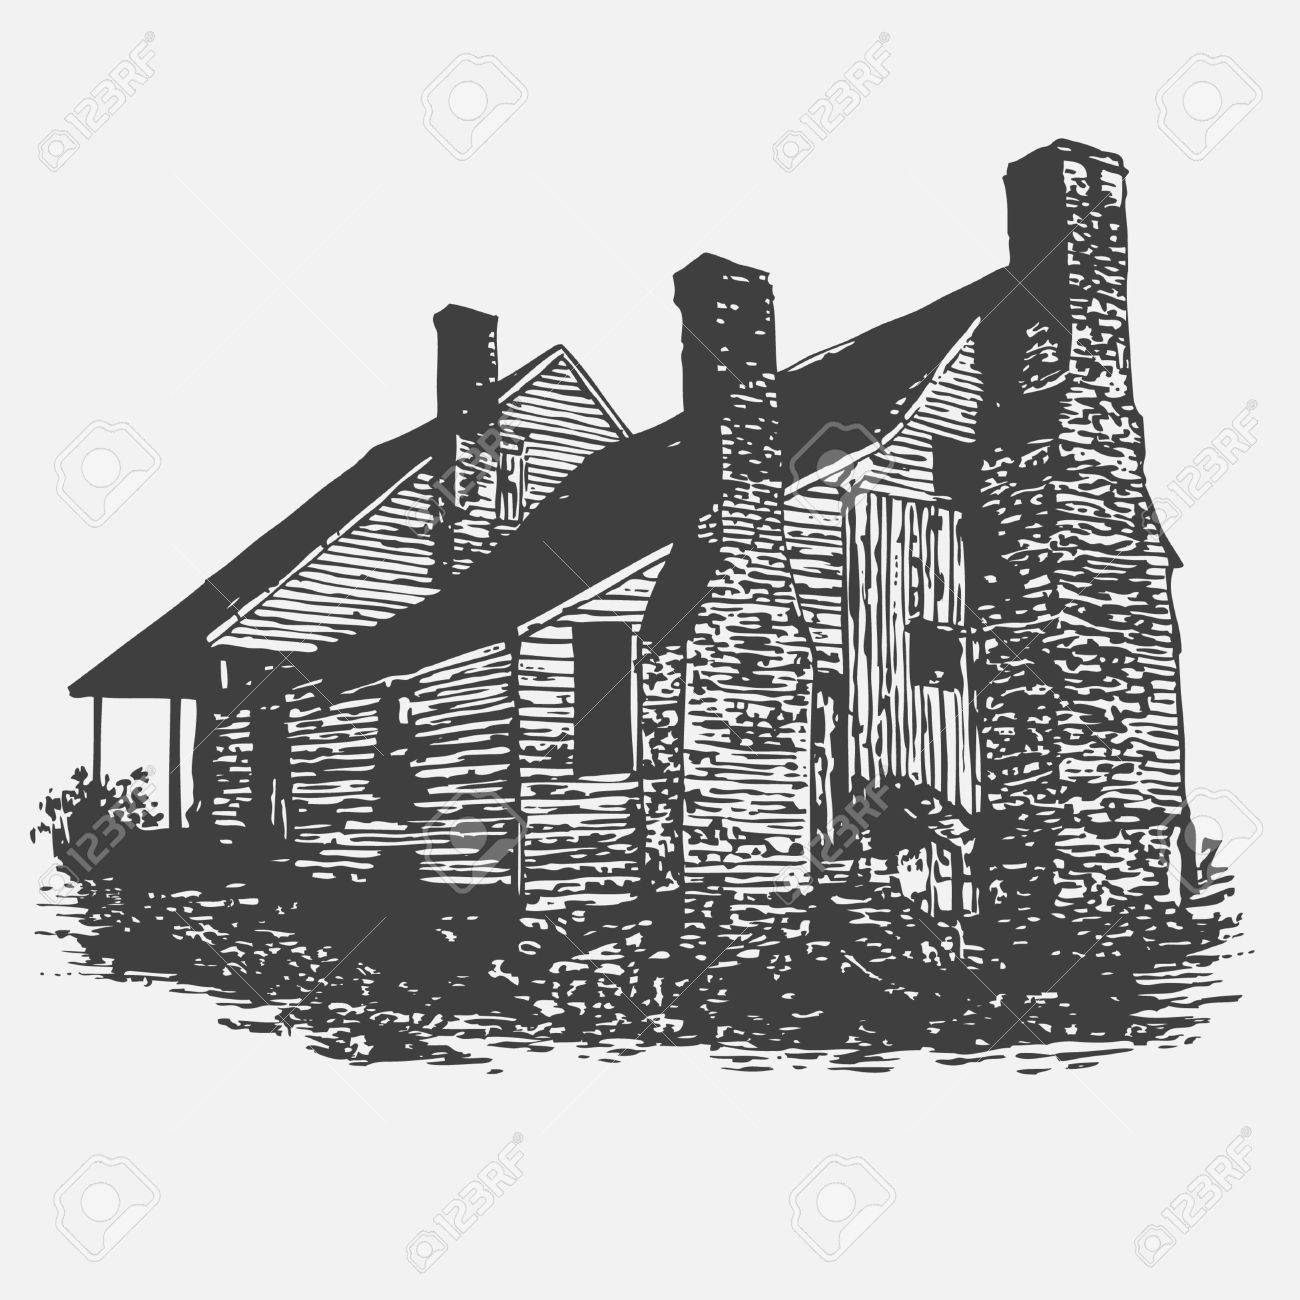 old abandoned house, graffiti style, vector illustration Stock Vector - 8920443